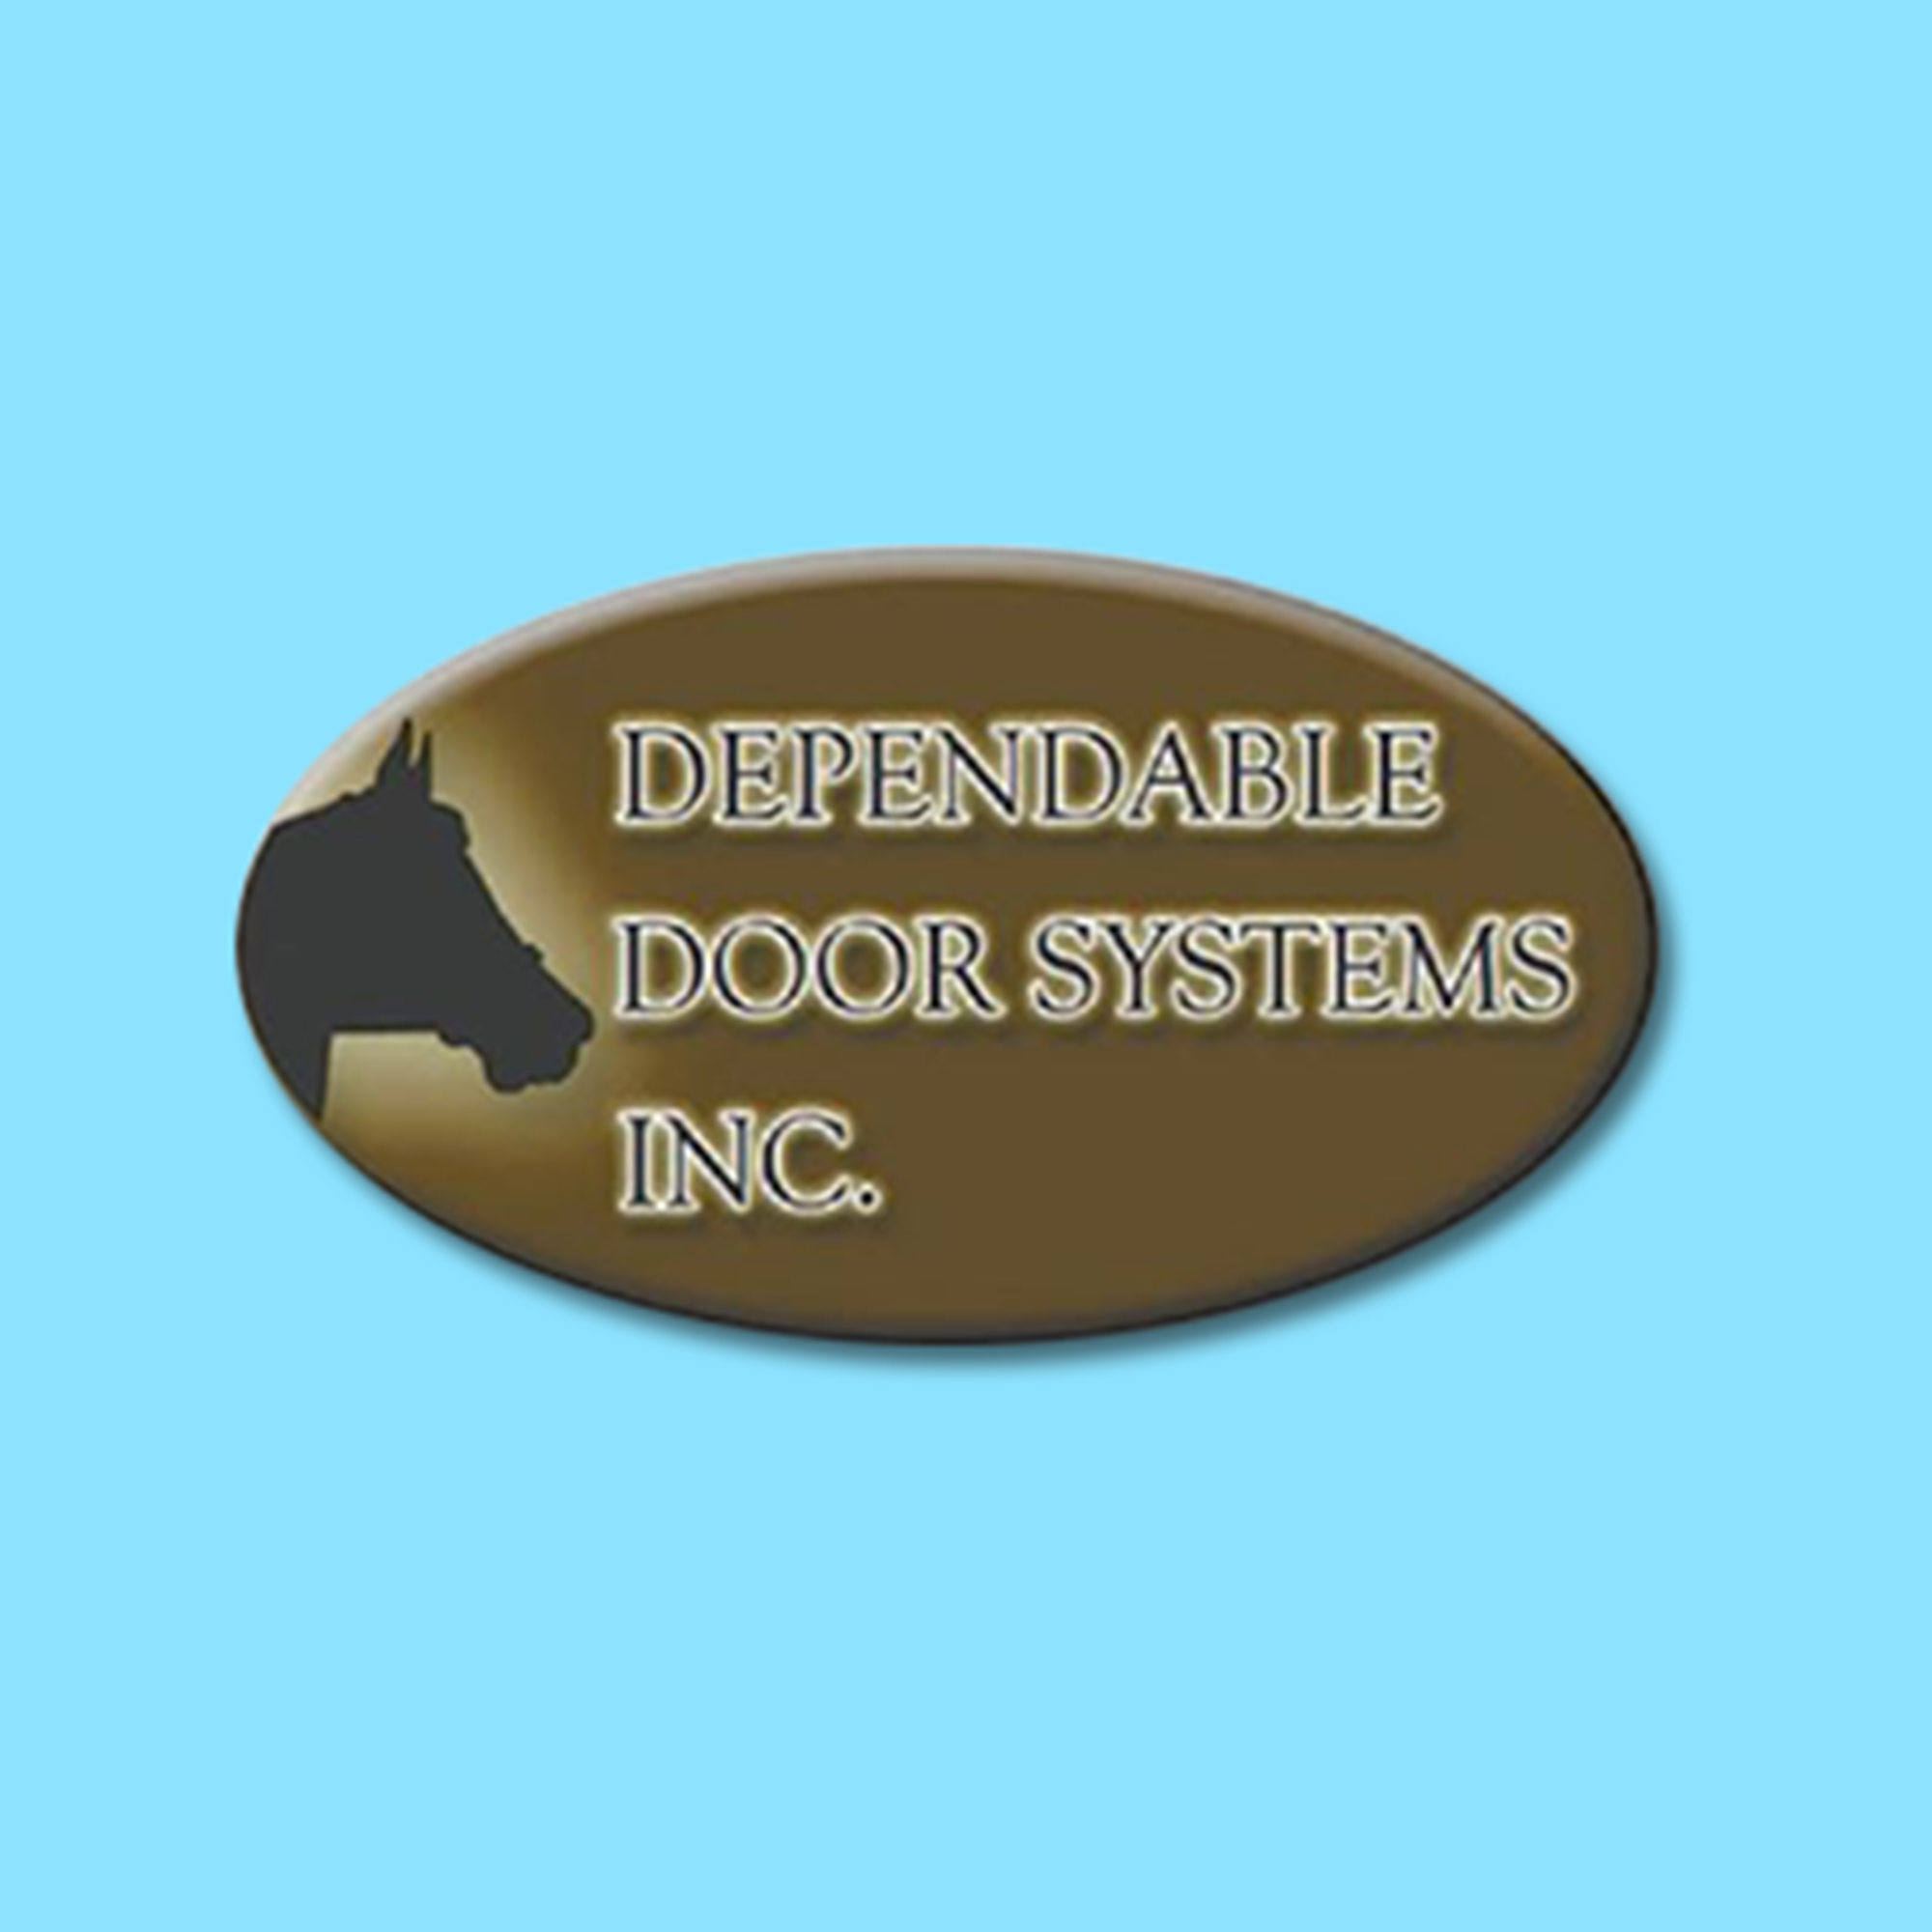 Logo Services/Products Doors|Garage Doors|Composite Garage Doors|Auto Reverse u0026 Infrared Beam|Carports|Vinyl|Security Gates|Aluminum|Fiberglass|Electric ...  sc 1 st  Yellow Pages : dependable door - pezcame.com